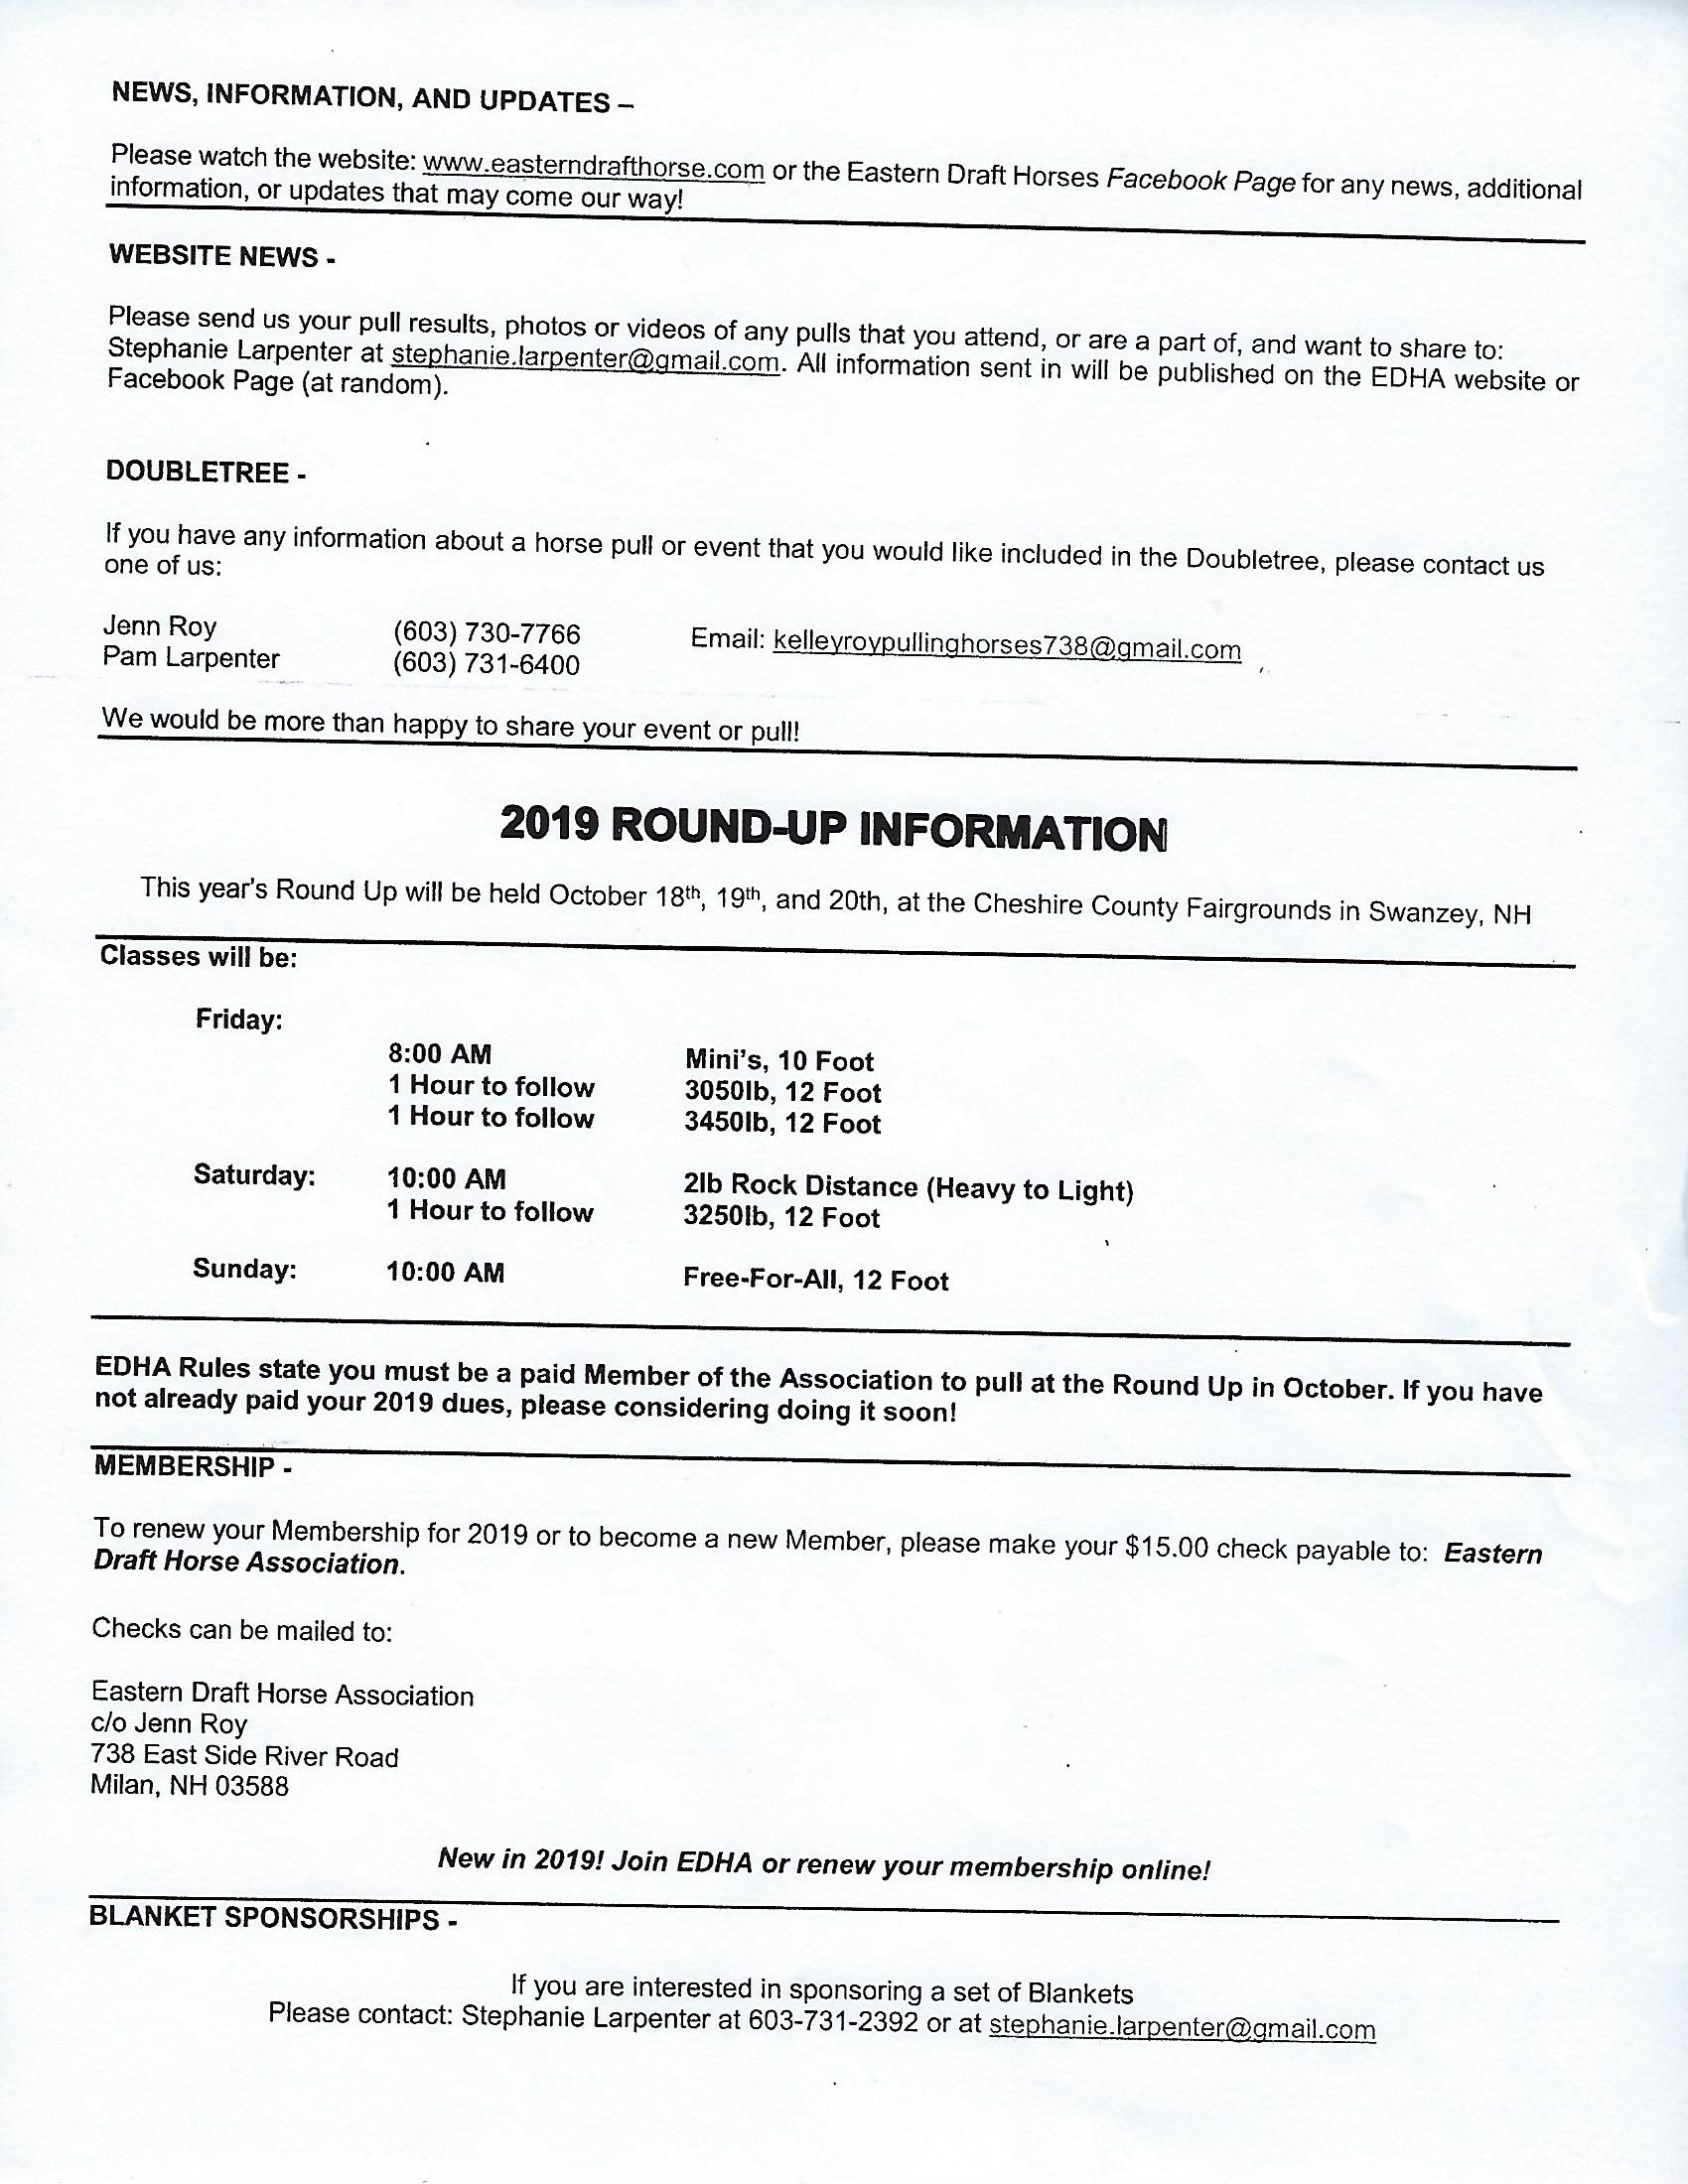 eastern draft horse pull sched 2019.png